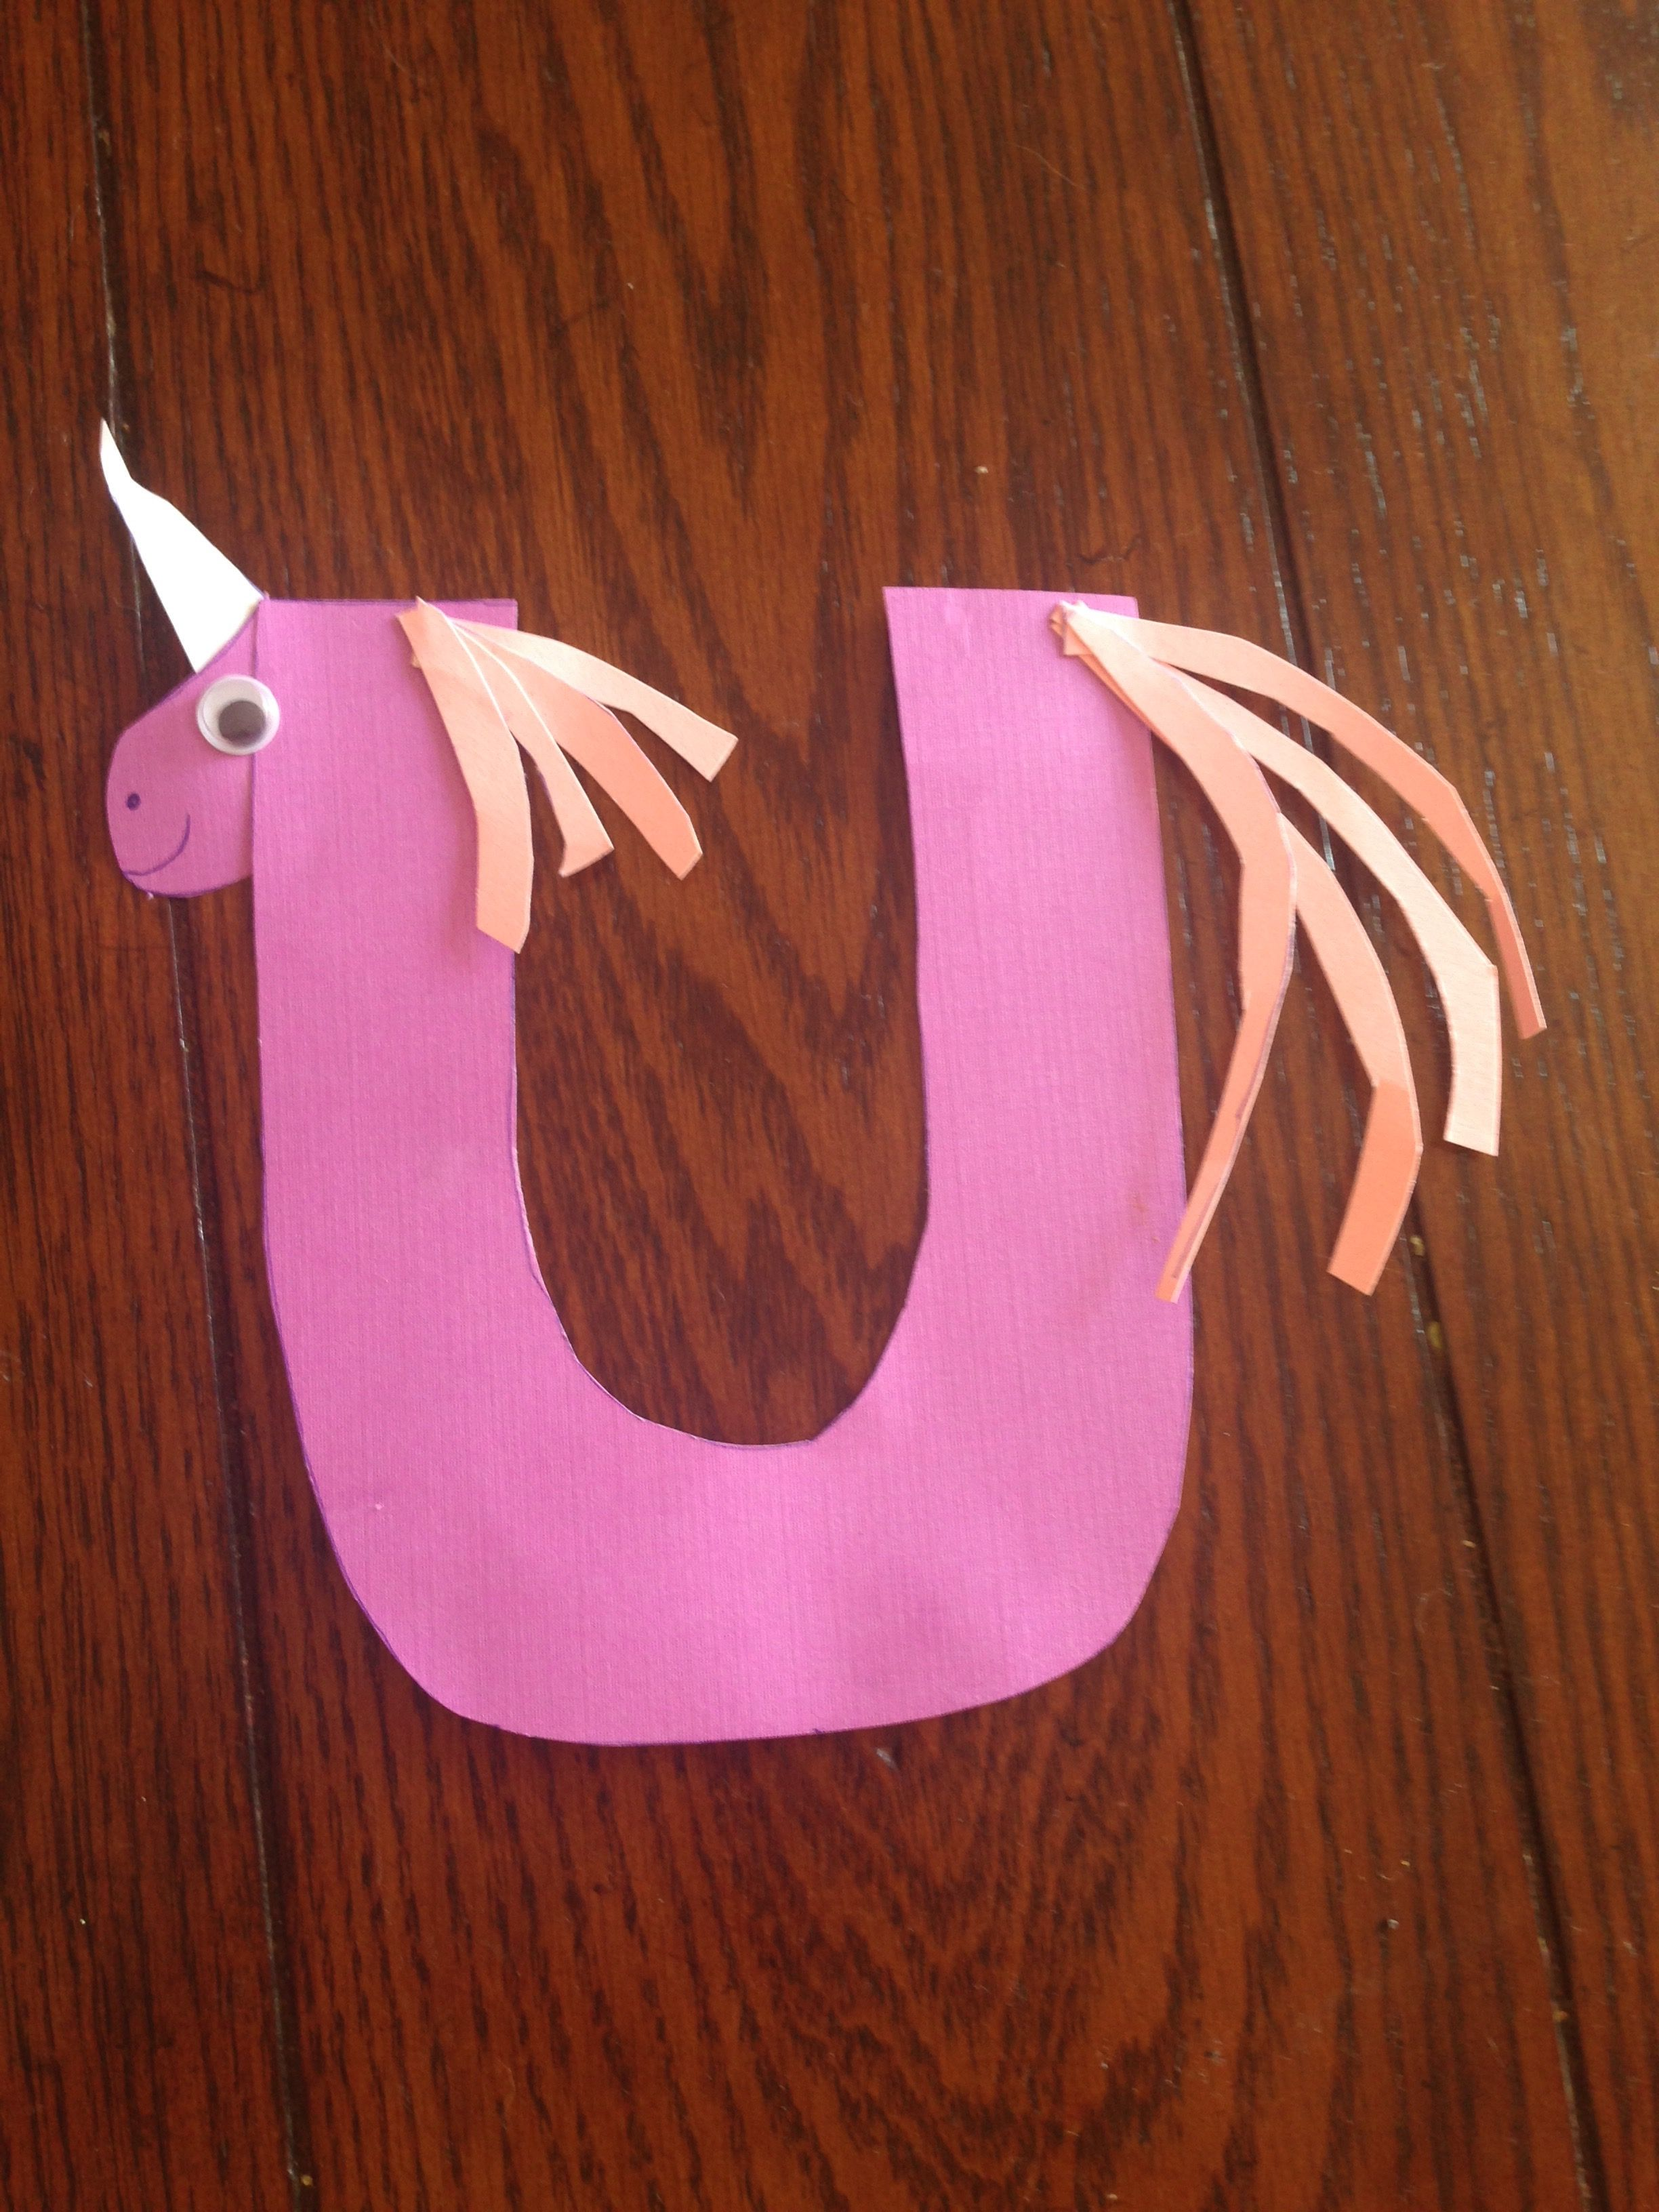 U Is For Unicorn Okay I Know Unicorns Aren T An Actual